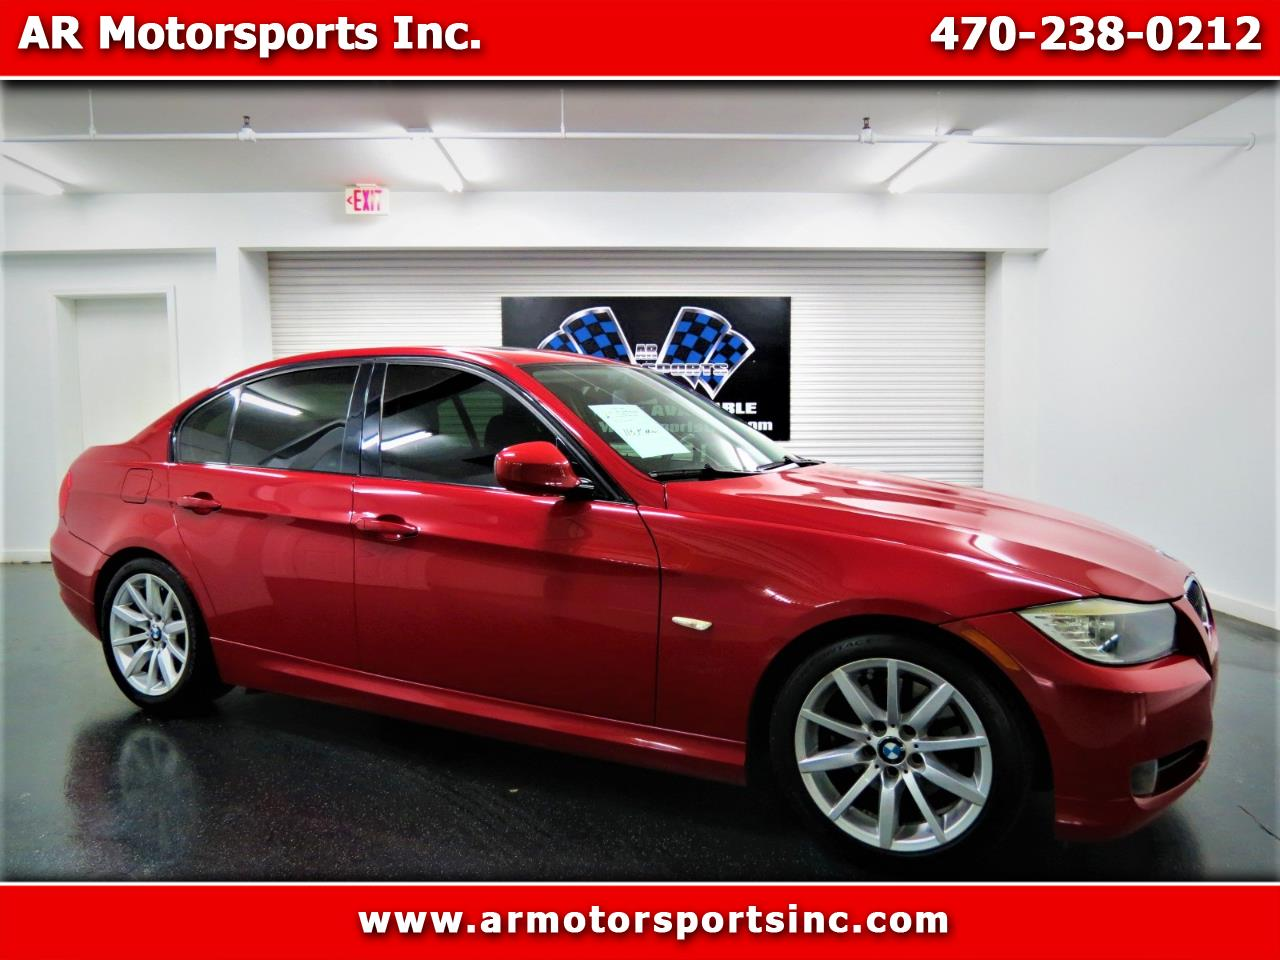 2009 BMW 3-Series 328i 6 Speed Manual With Sport Package